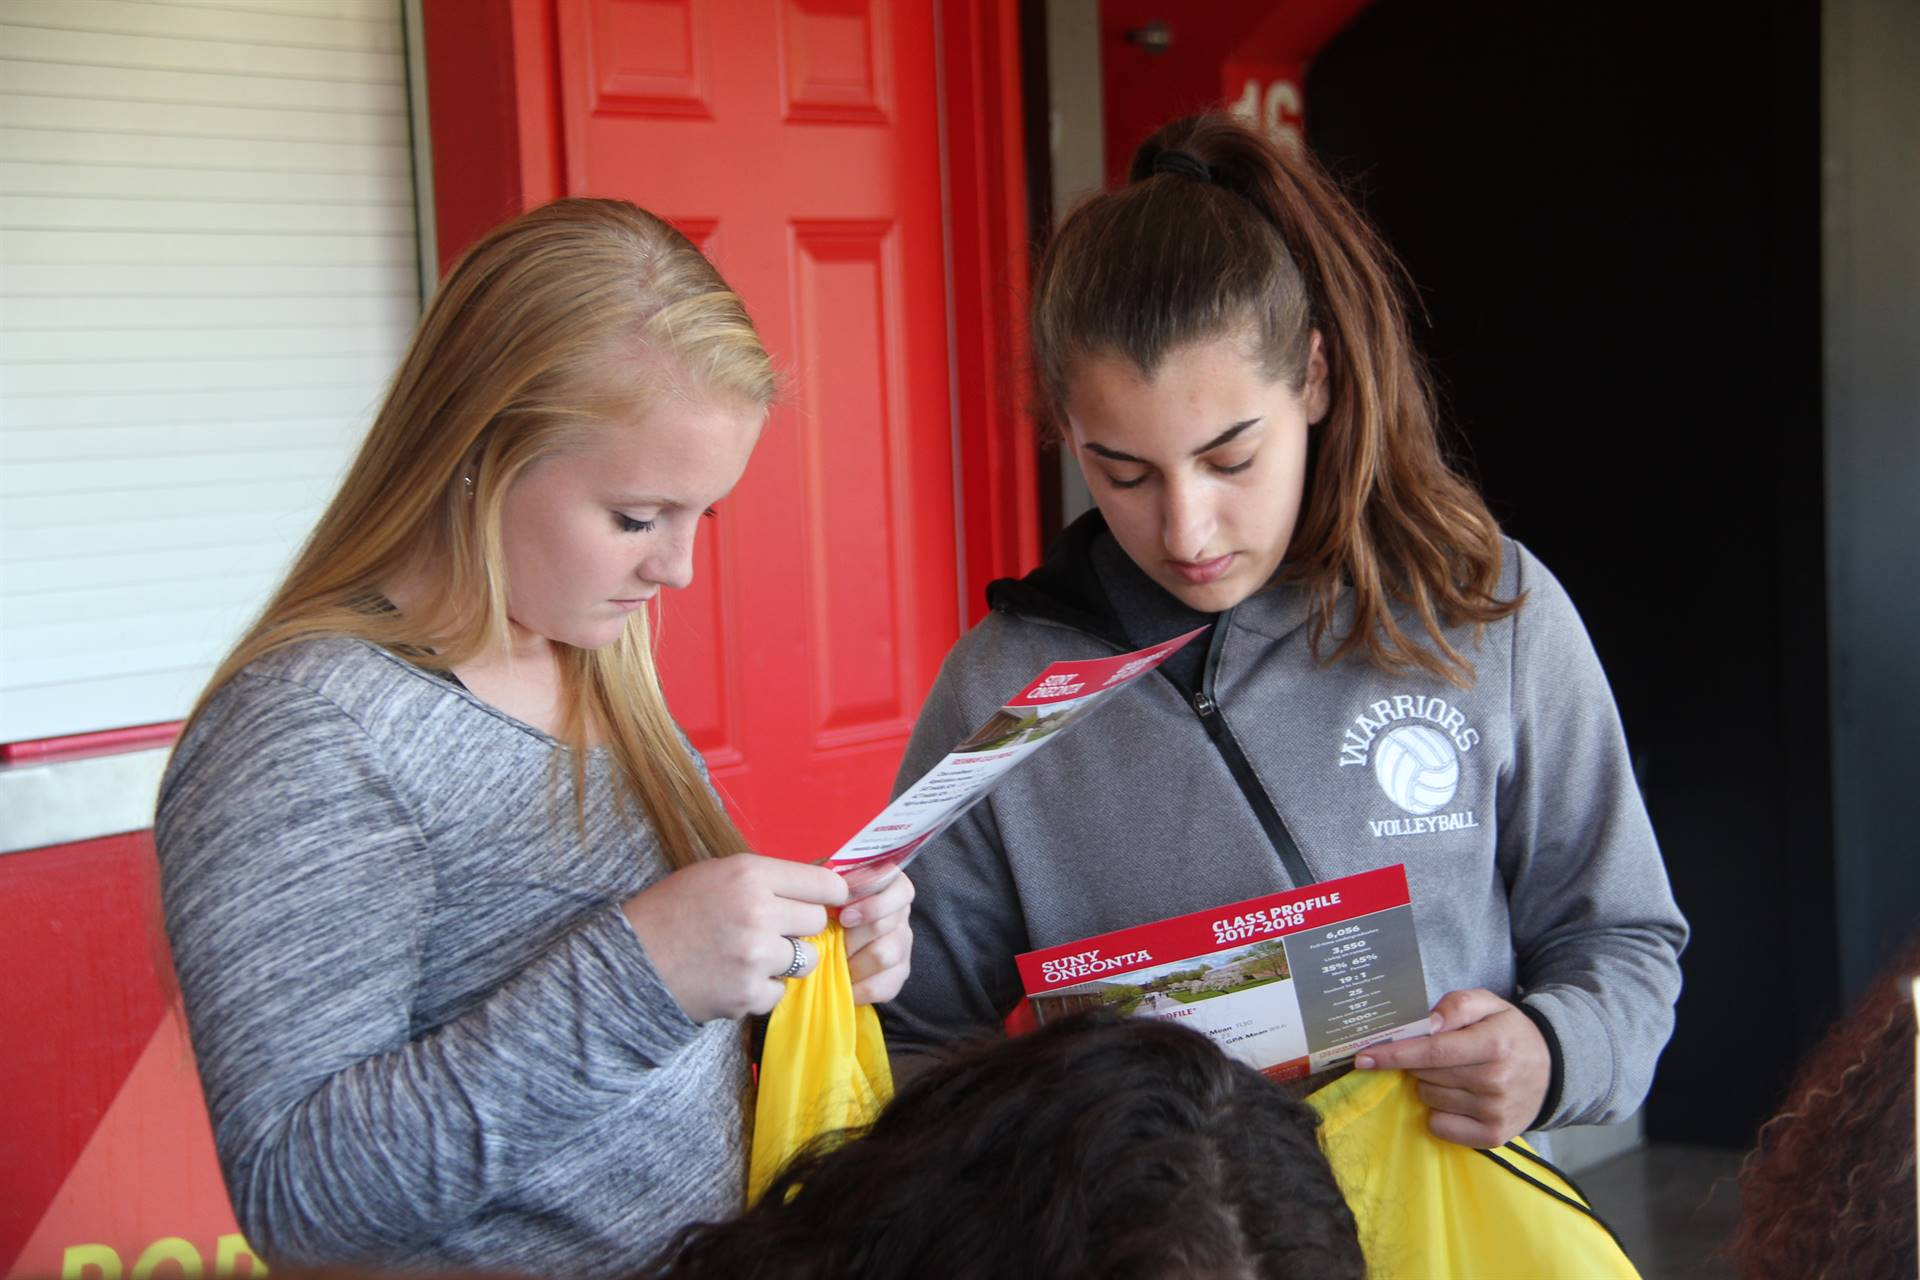 chenango valley high school students look at college pamphlets